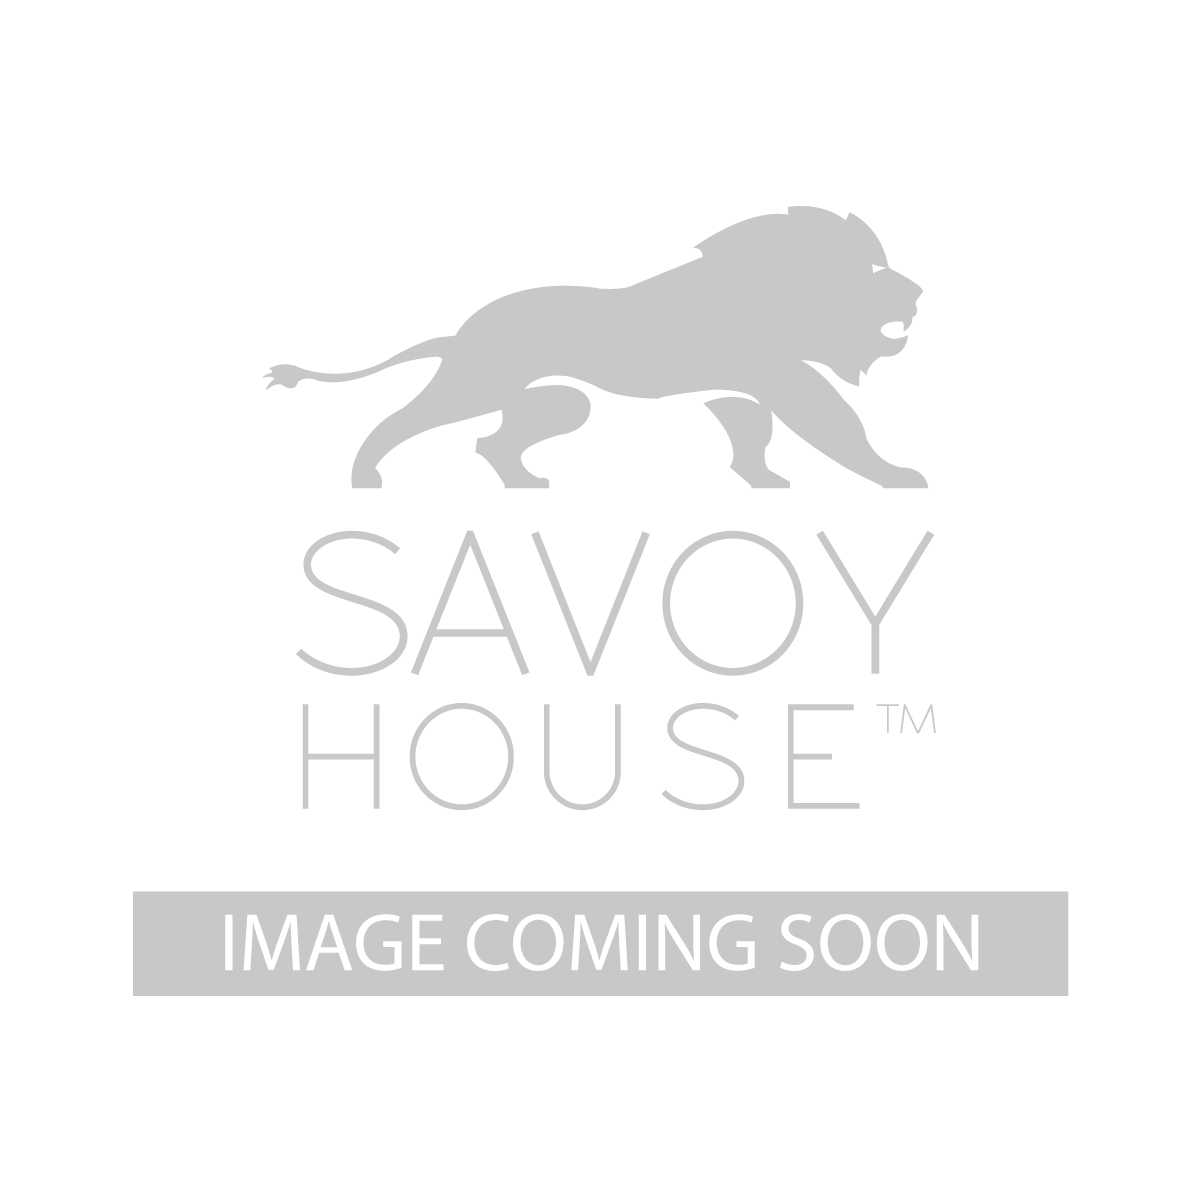 52 210 3SV SNCH Starling 3 Blade Ceiling Fan by Savoy House